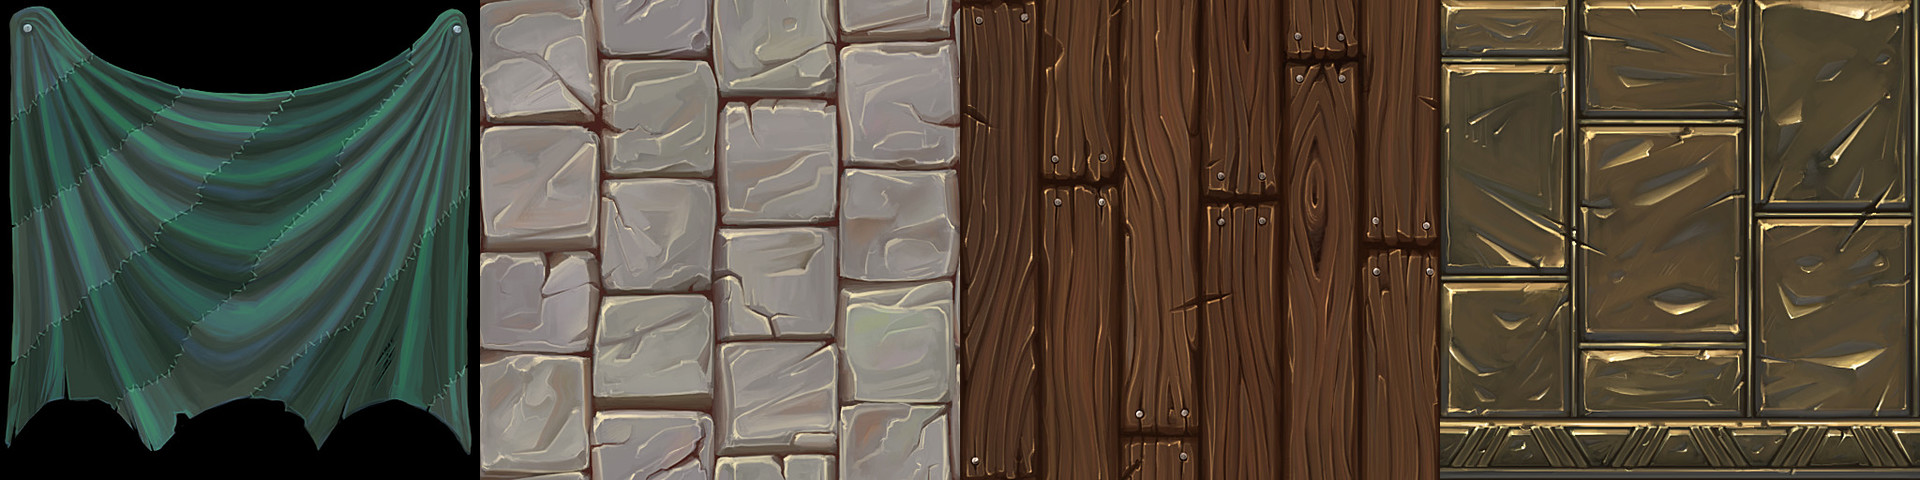 hand painted textures for the 38 studio's art test